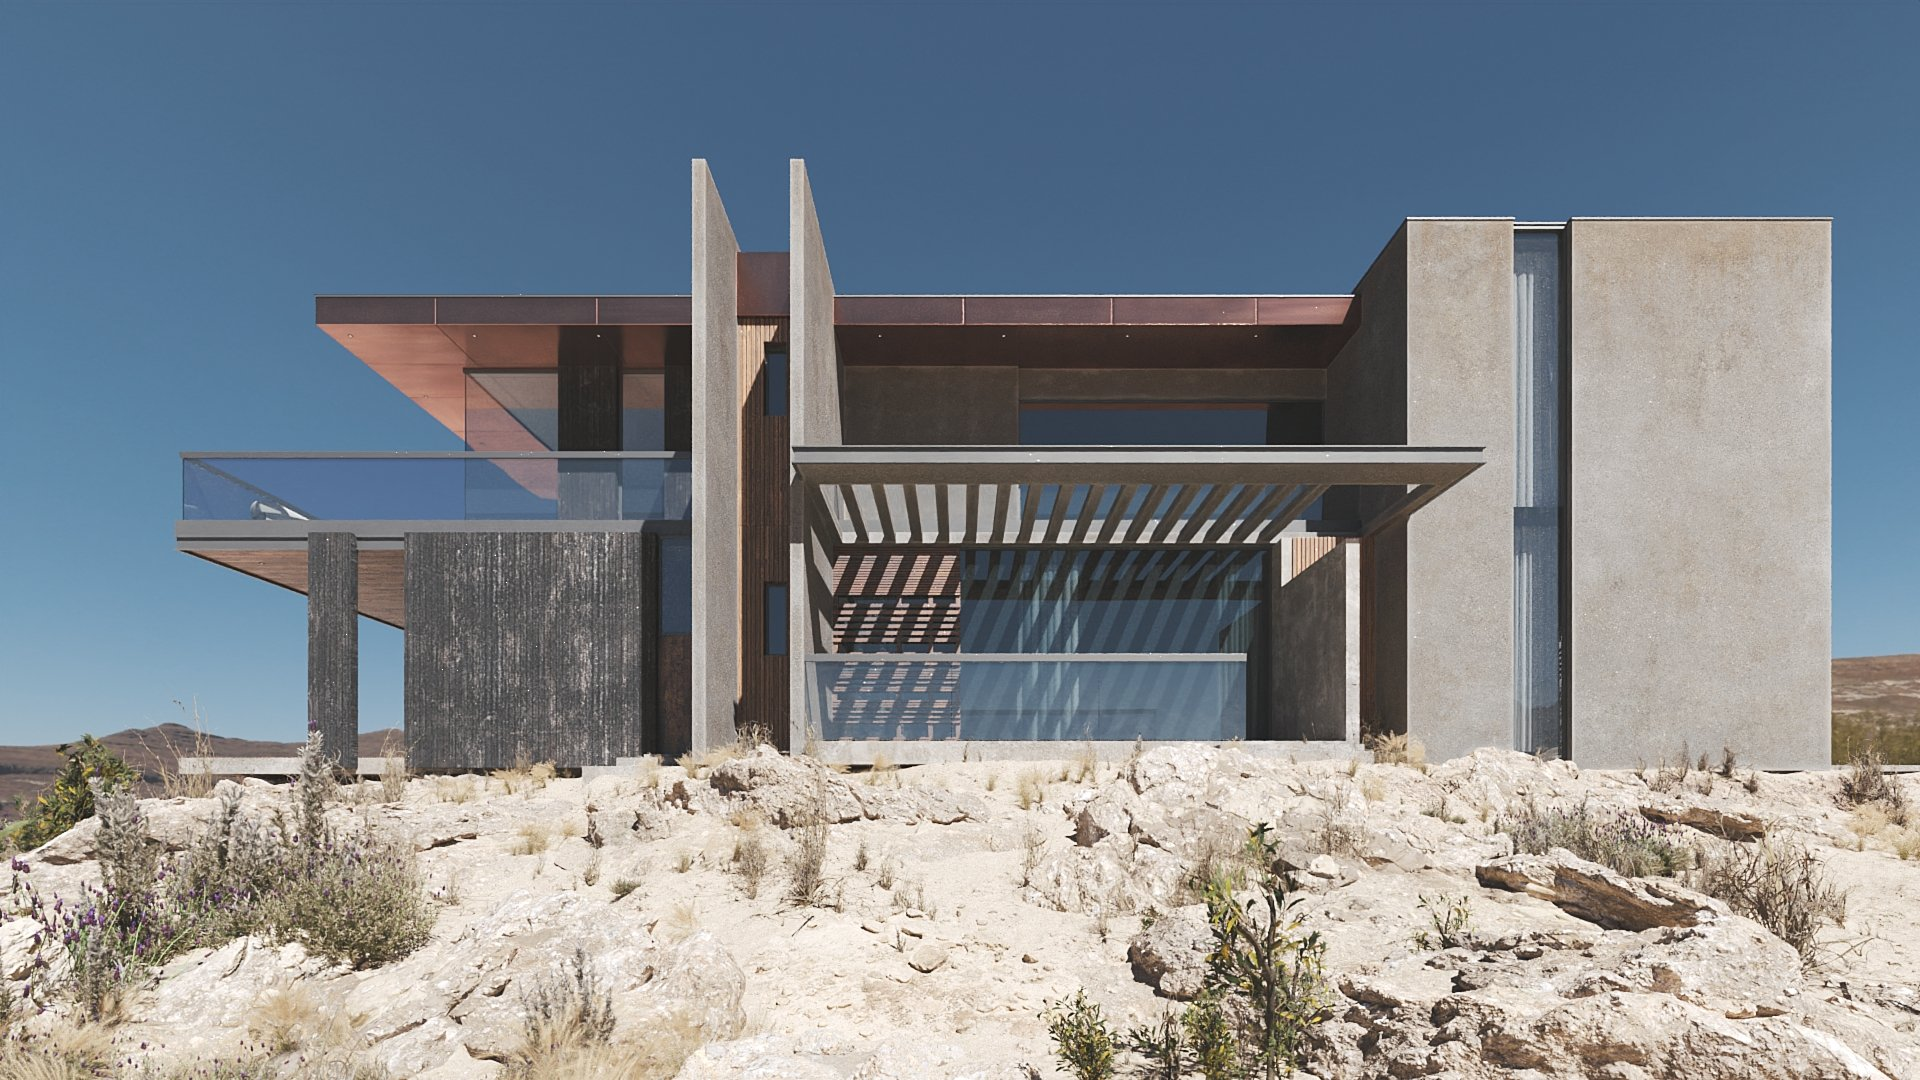 Realistic Architectural Rendering for a Villa: Details and Minor Greenery